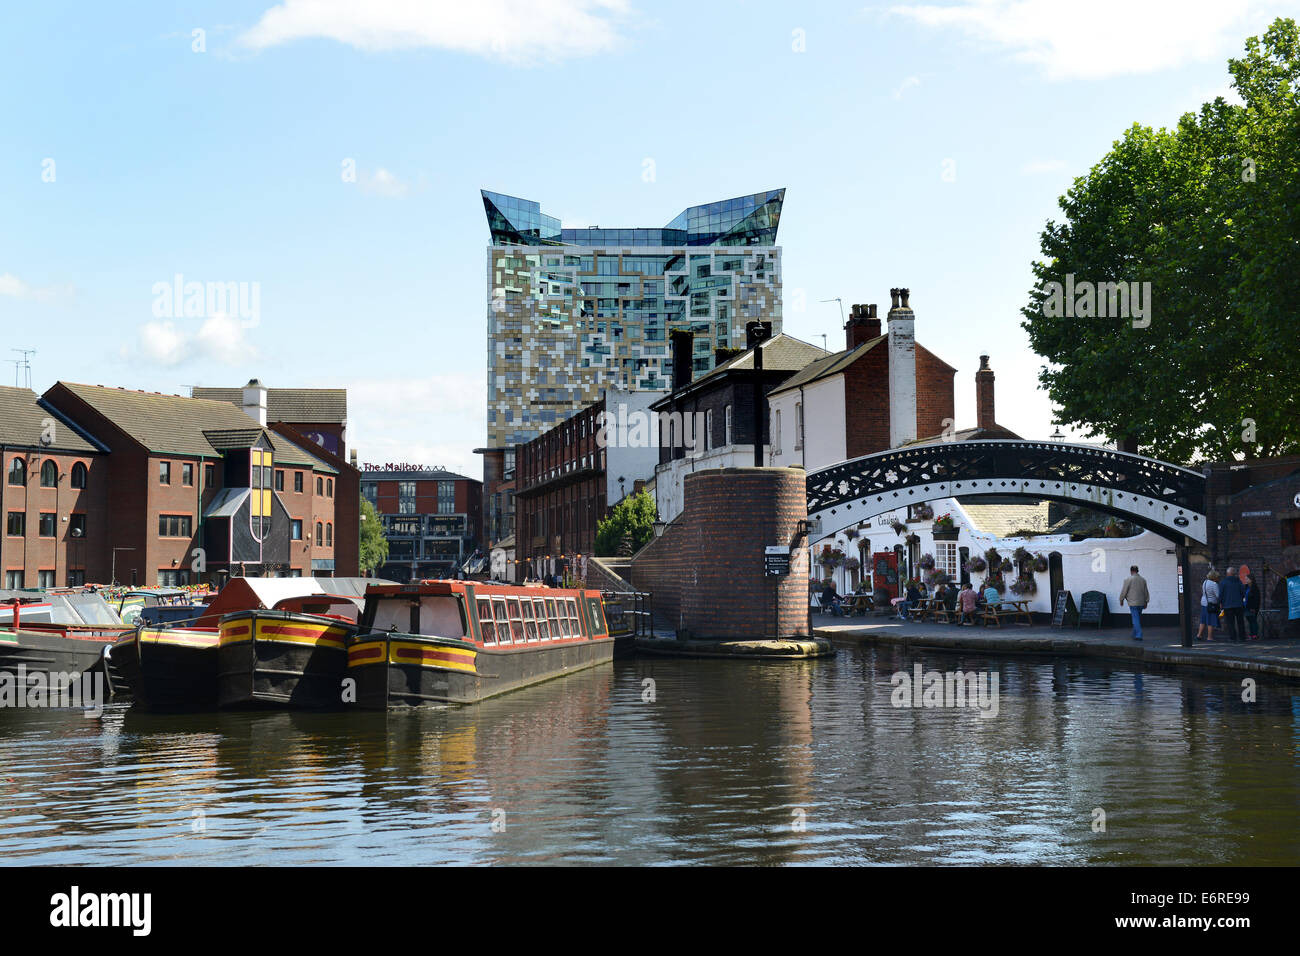 Birmingham canals waterways narrowboats at Broad Canal Basin with the Cube building Uk - Stock Image